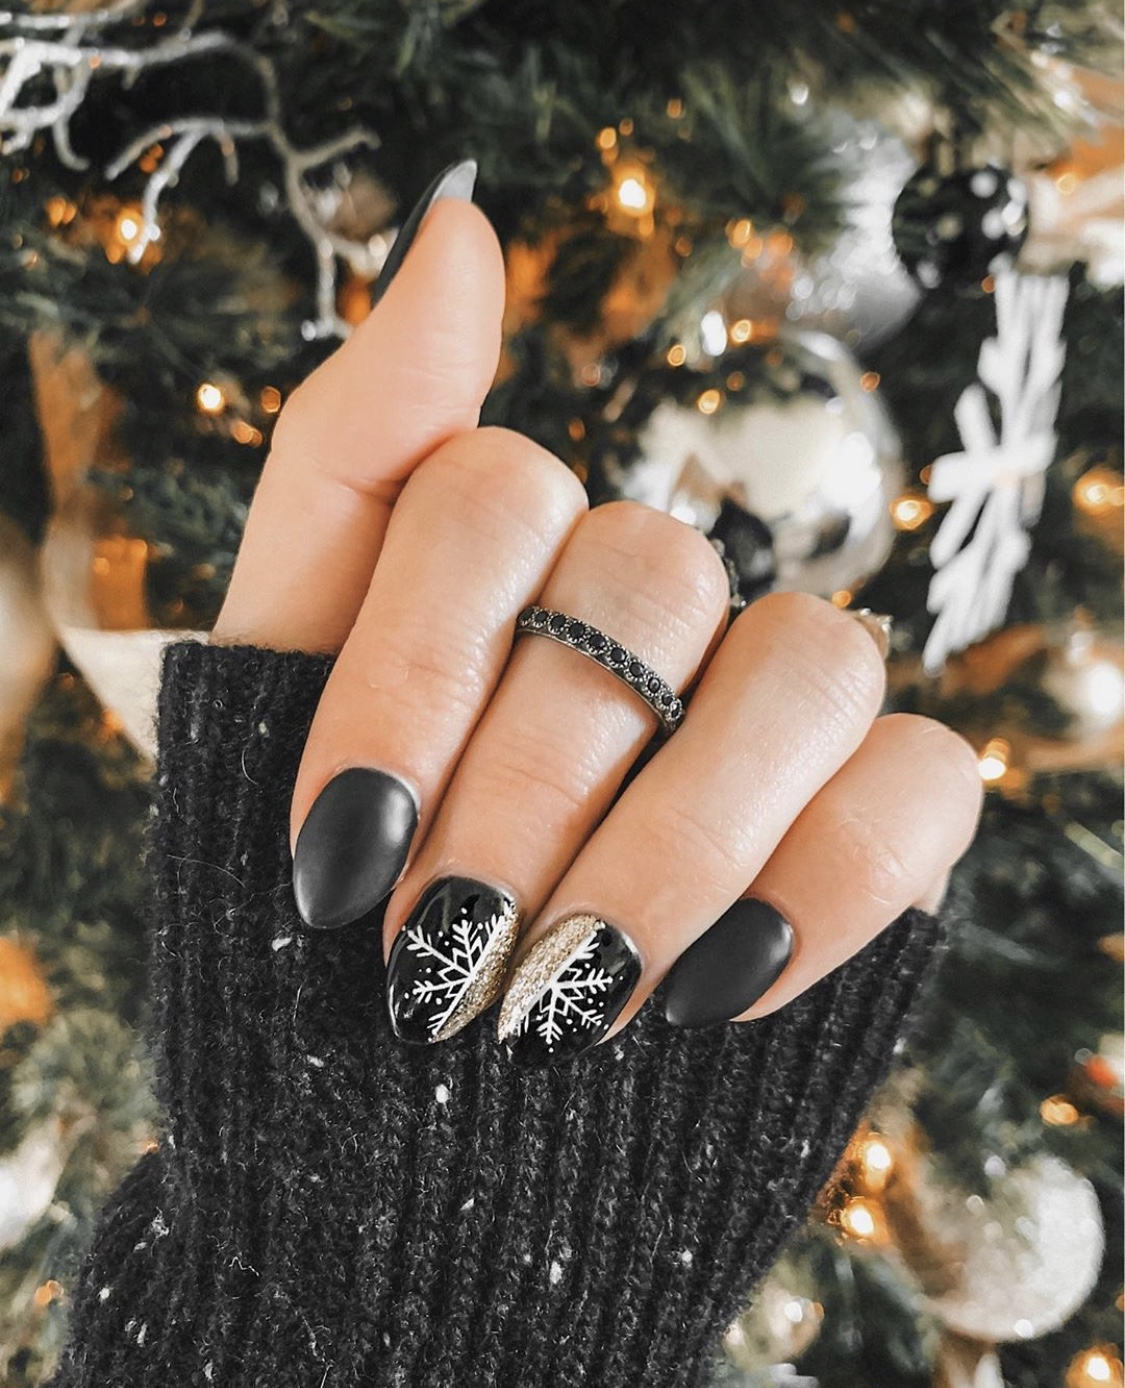 Nail Art Designs by popular Austin beauty blog, Dressed to Kill: image of a woman with nail art and wearing a Armenta ring.